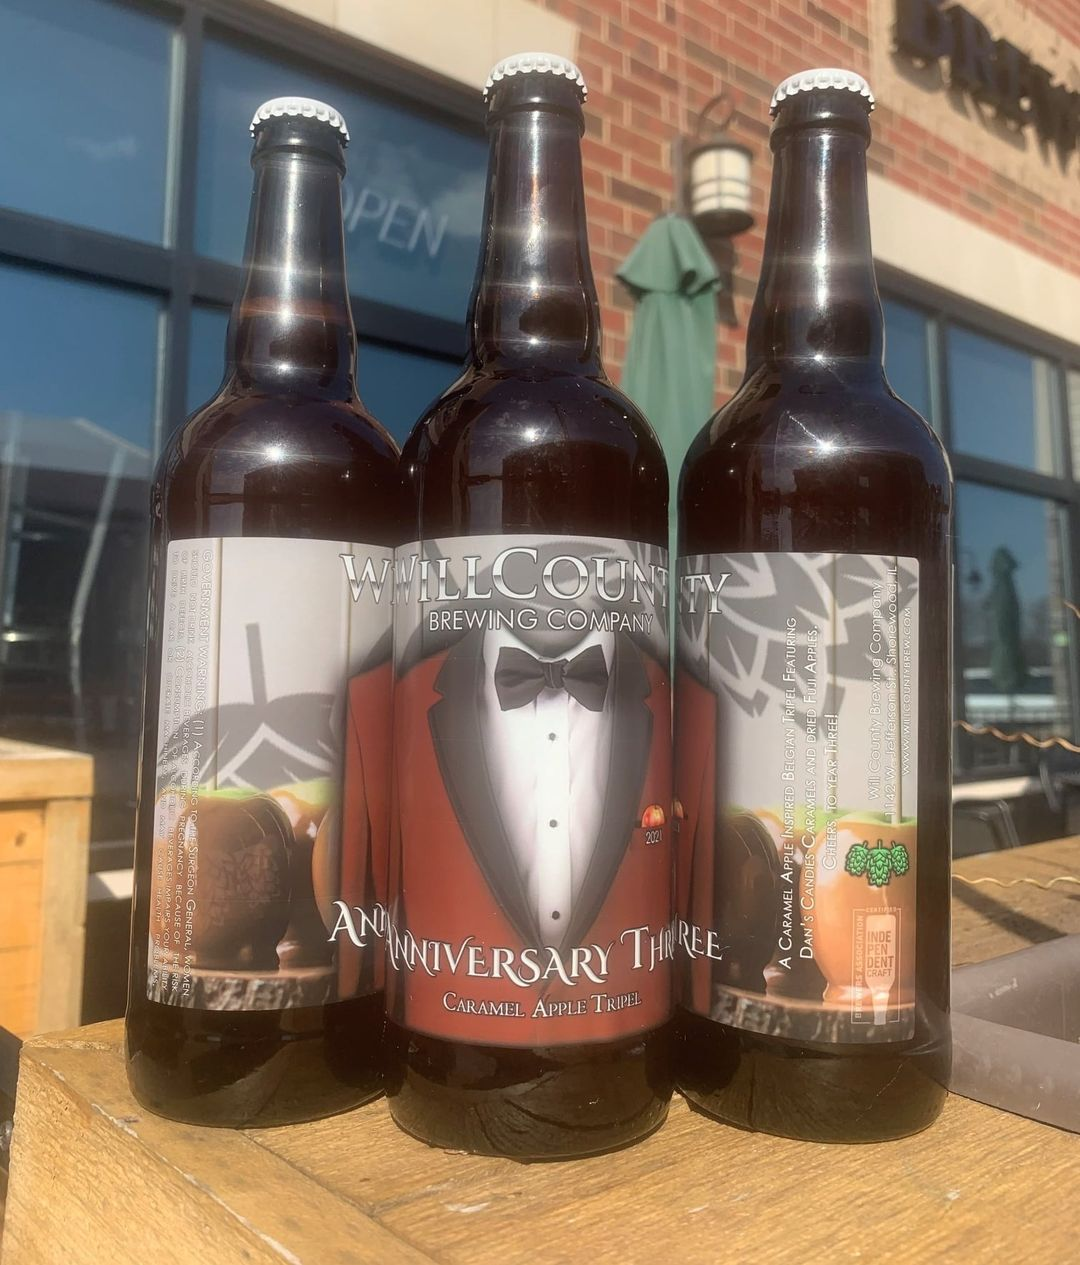 Bottles of Will County Brewing's Anniversary Three